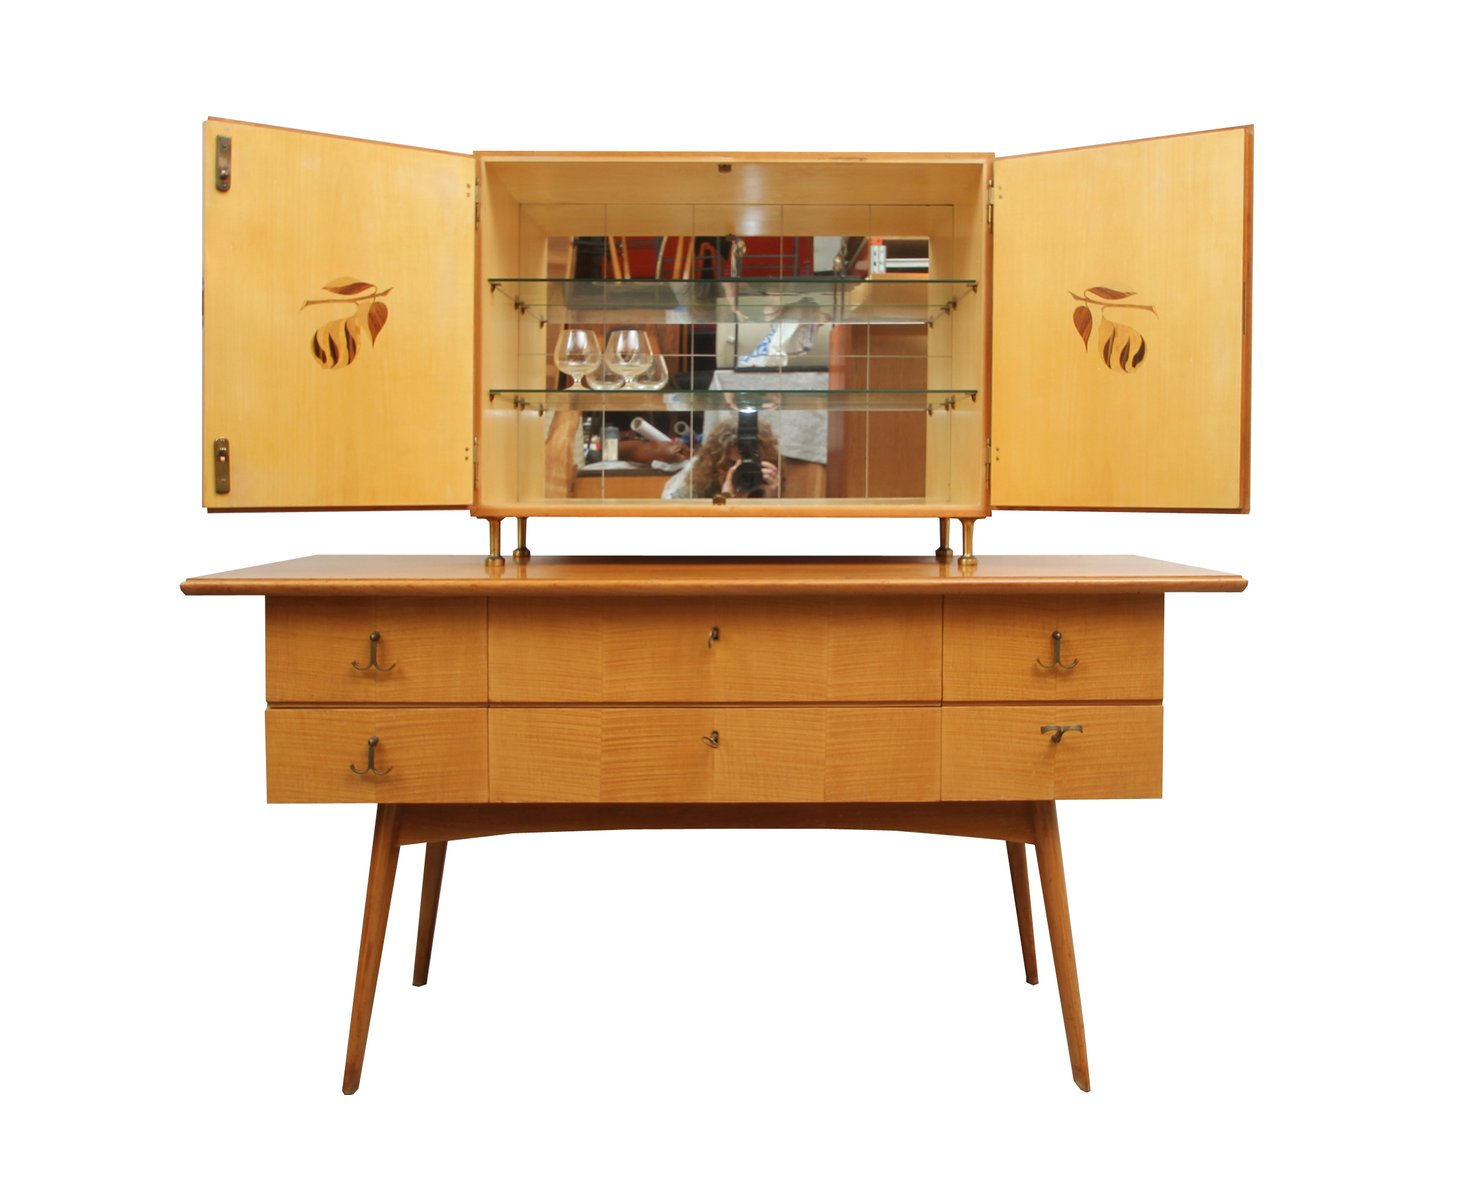 cherry wood sideboard and bar cabinet s for sale at pamono - cherry wood sideboard and bar cabinet s